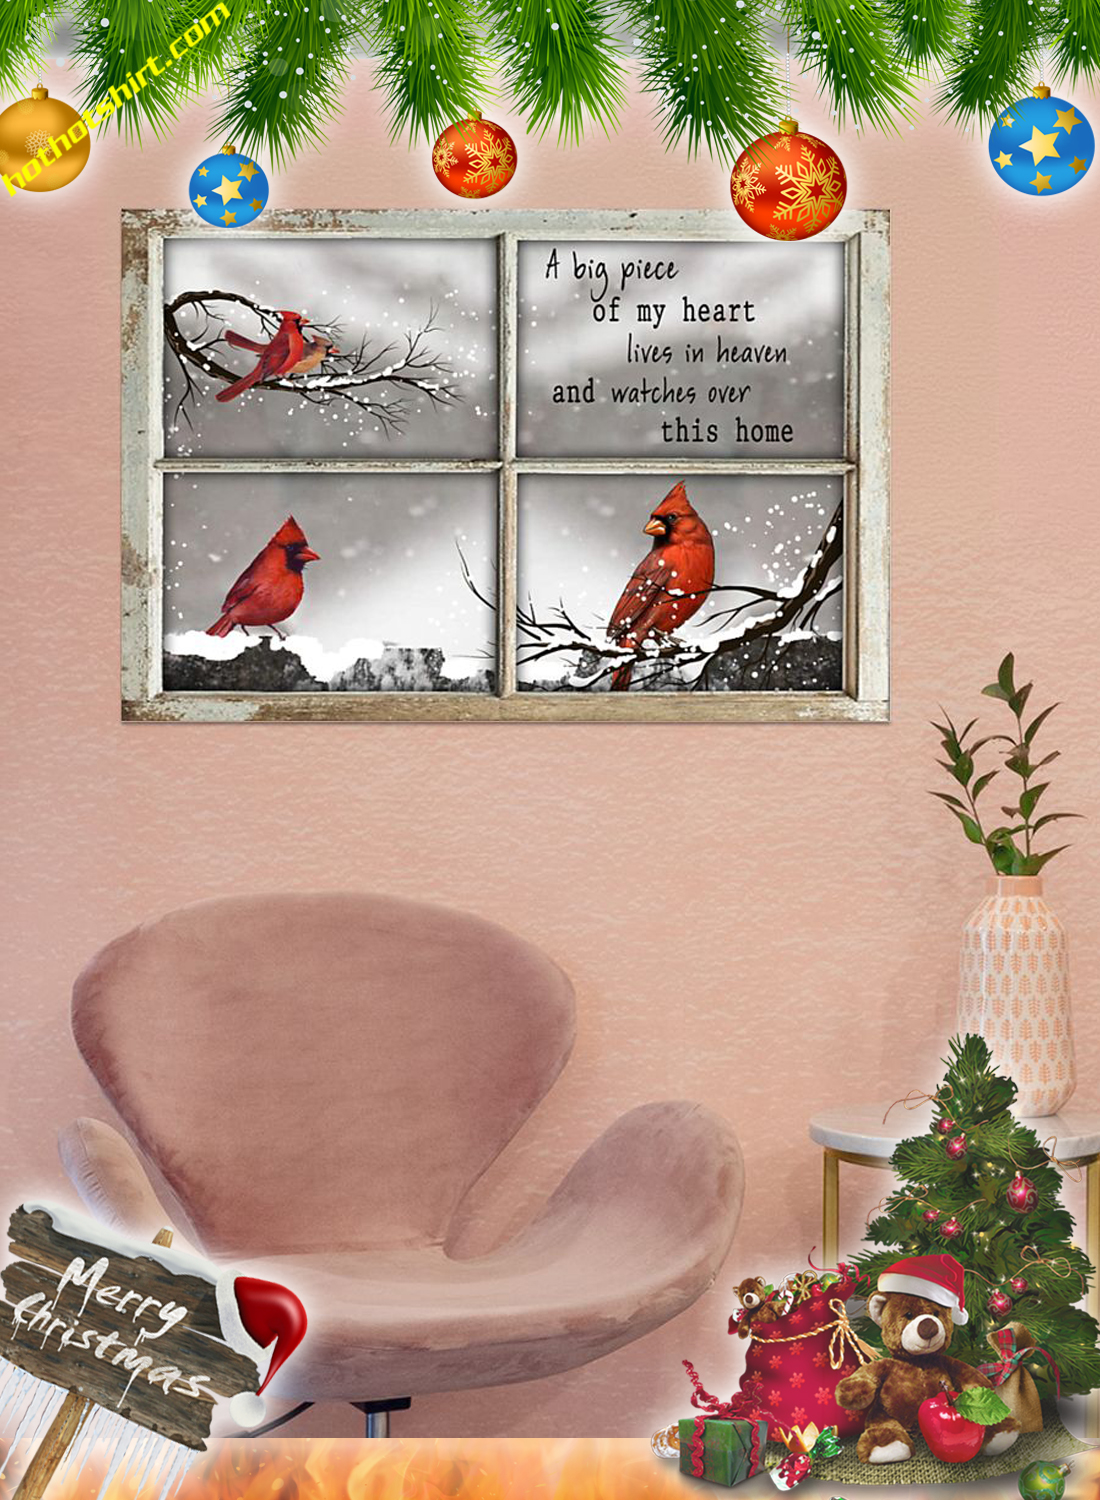 Cardinal Bird A big piece of my heart lives in heaven poster 2